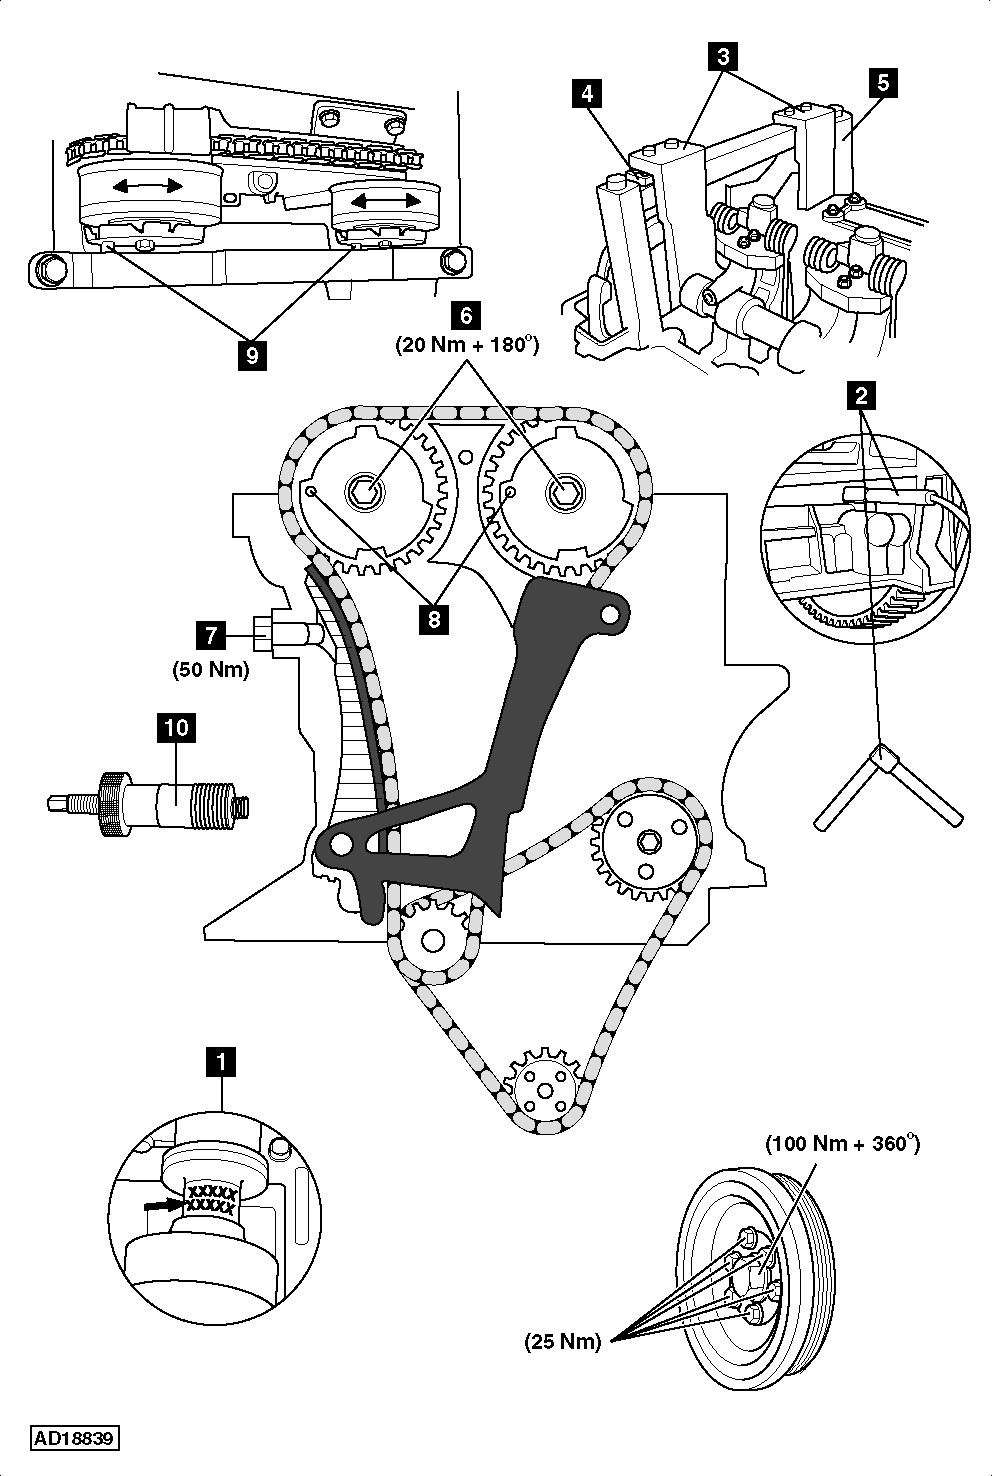 engine diagram of a 2006 bmw 325i 2006 mazda 626 engine